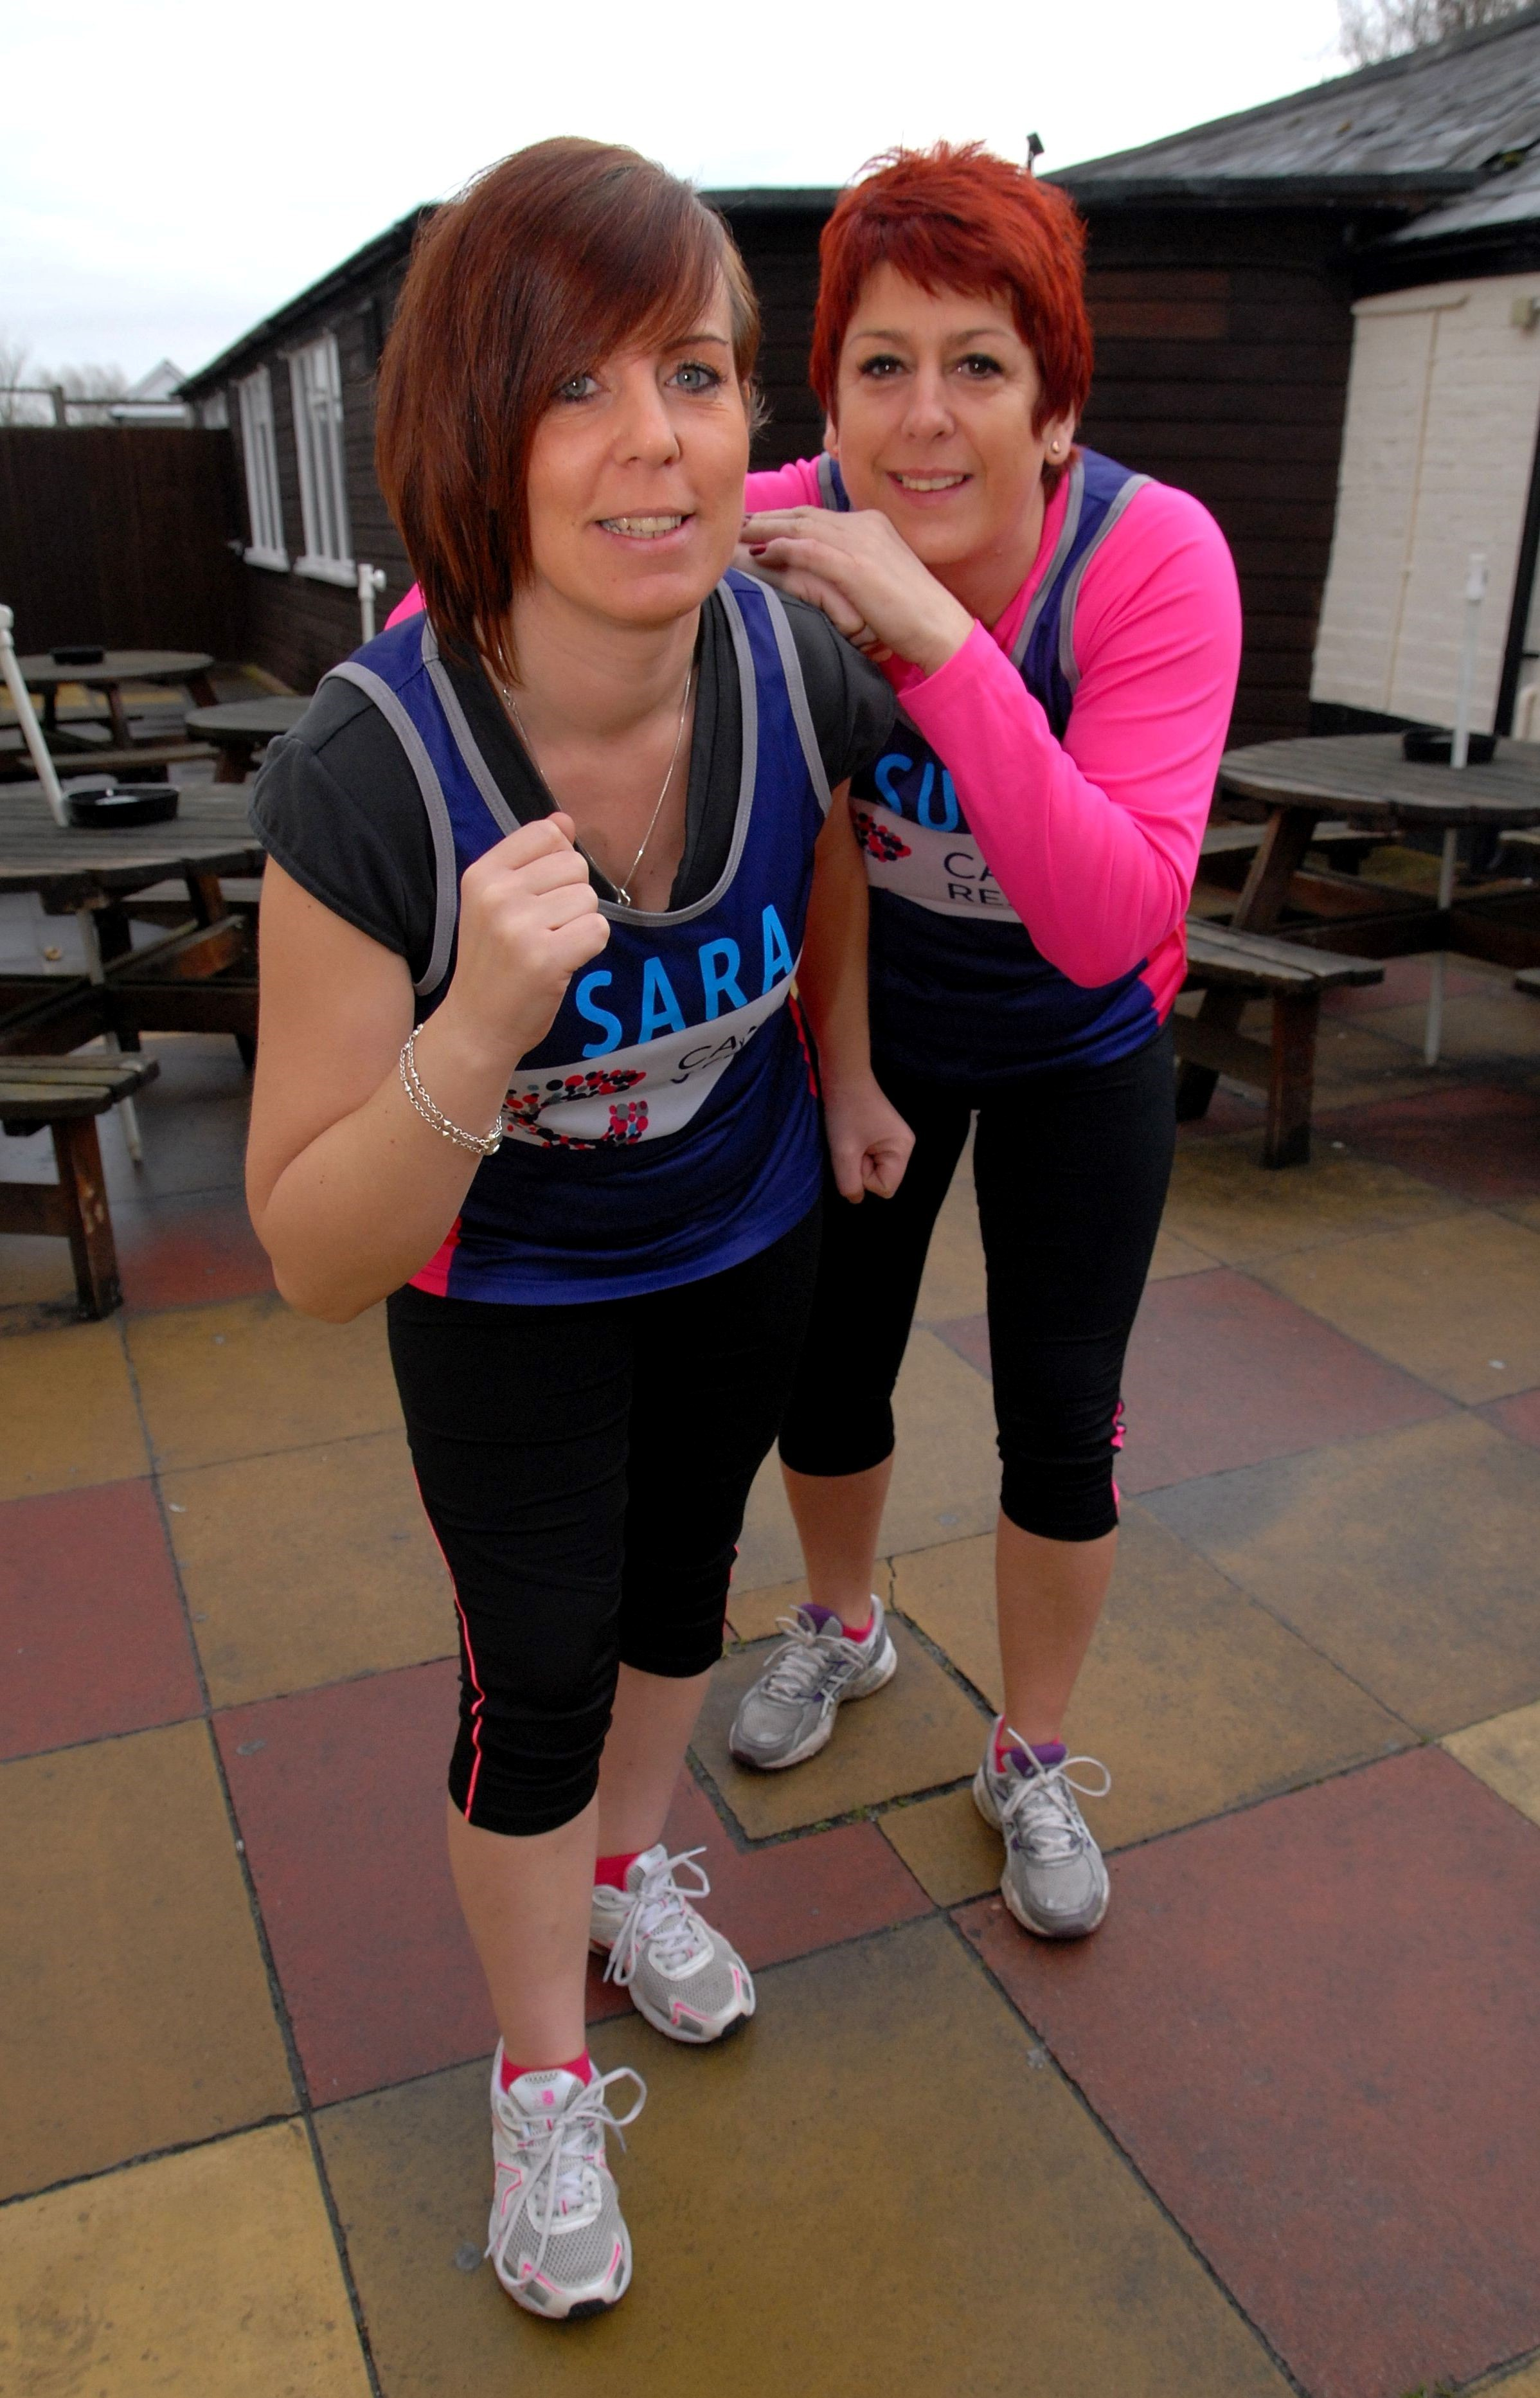 0814523602 Paul Jackson Pershore 18.02.14 From left - Sara Coleman and Sue Cosnett are running the Silverstone half marathon for Cancer Research UK. (4096495)